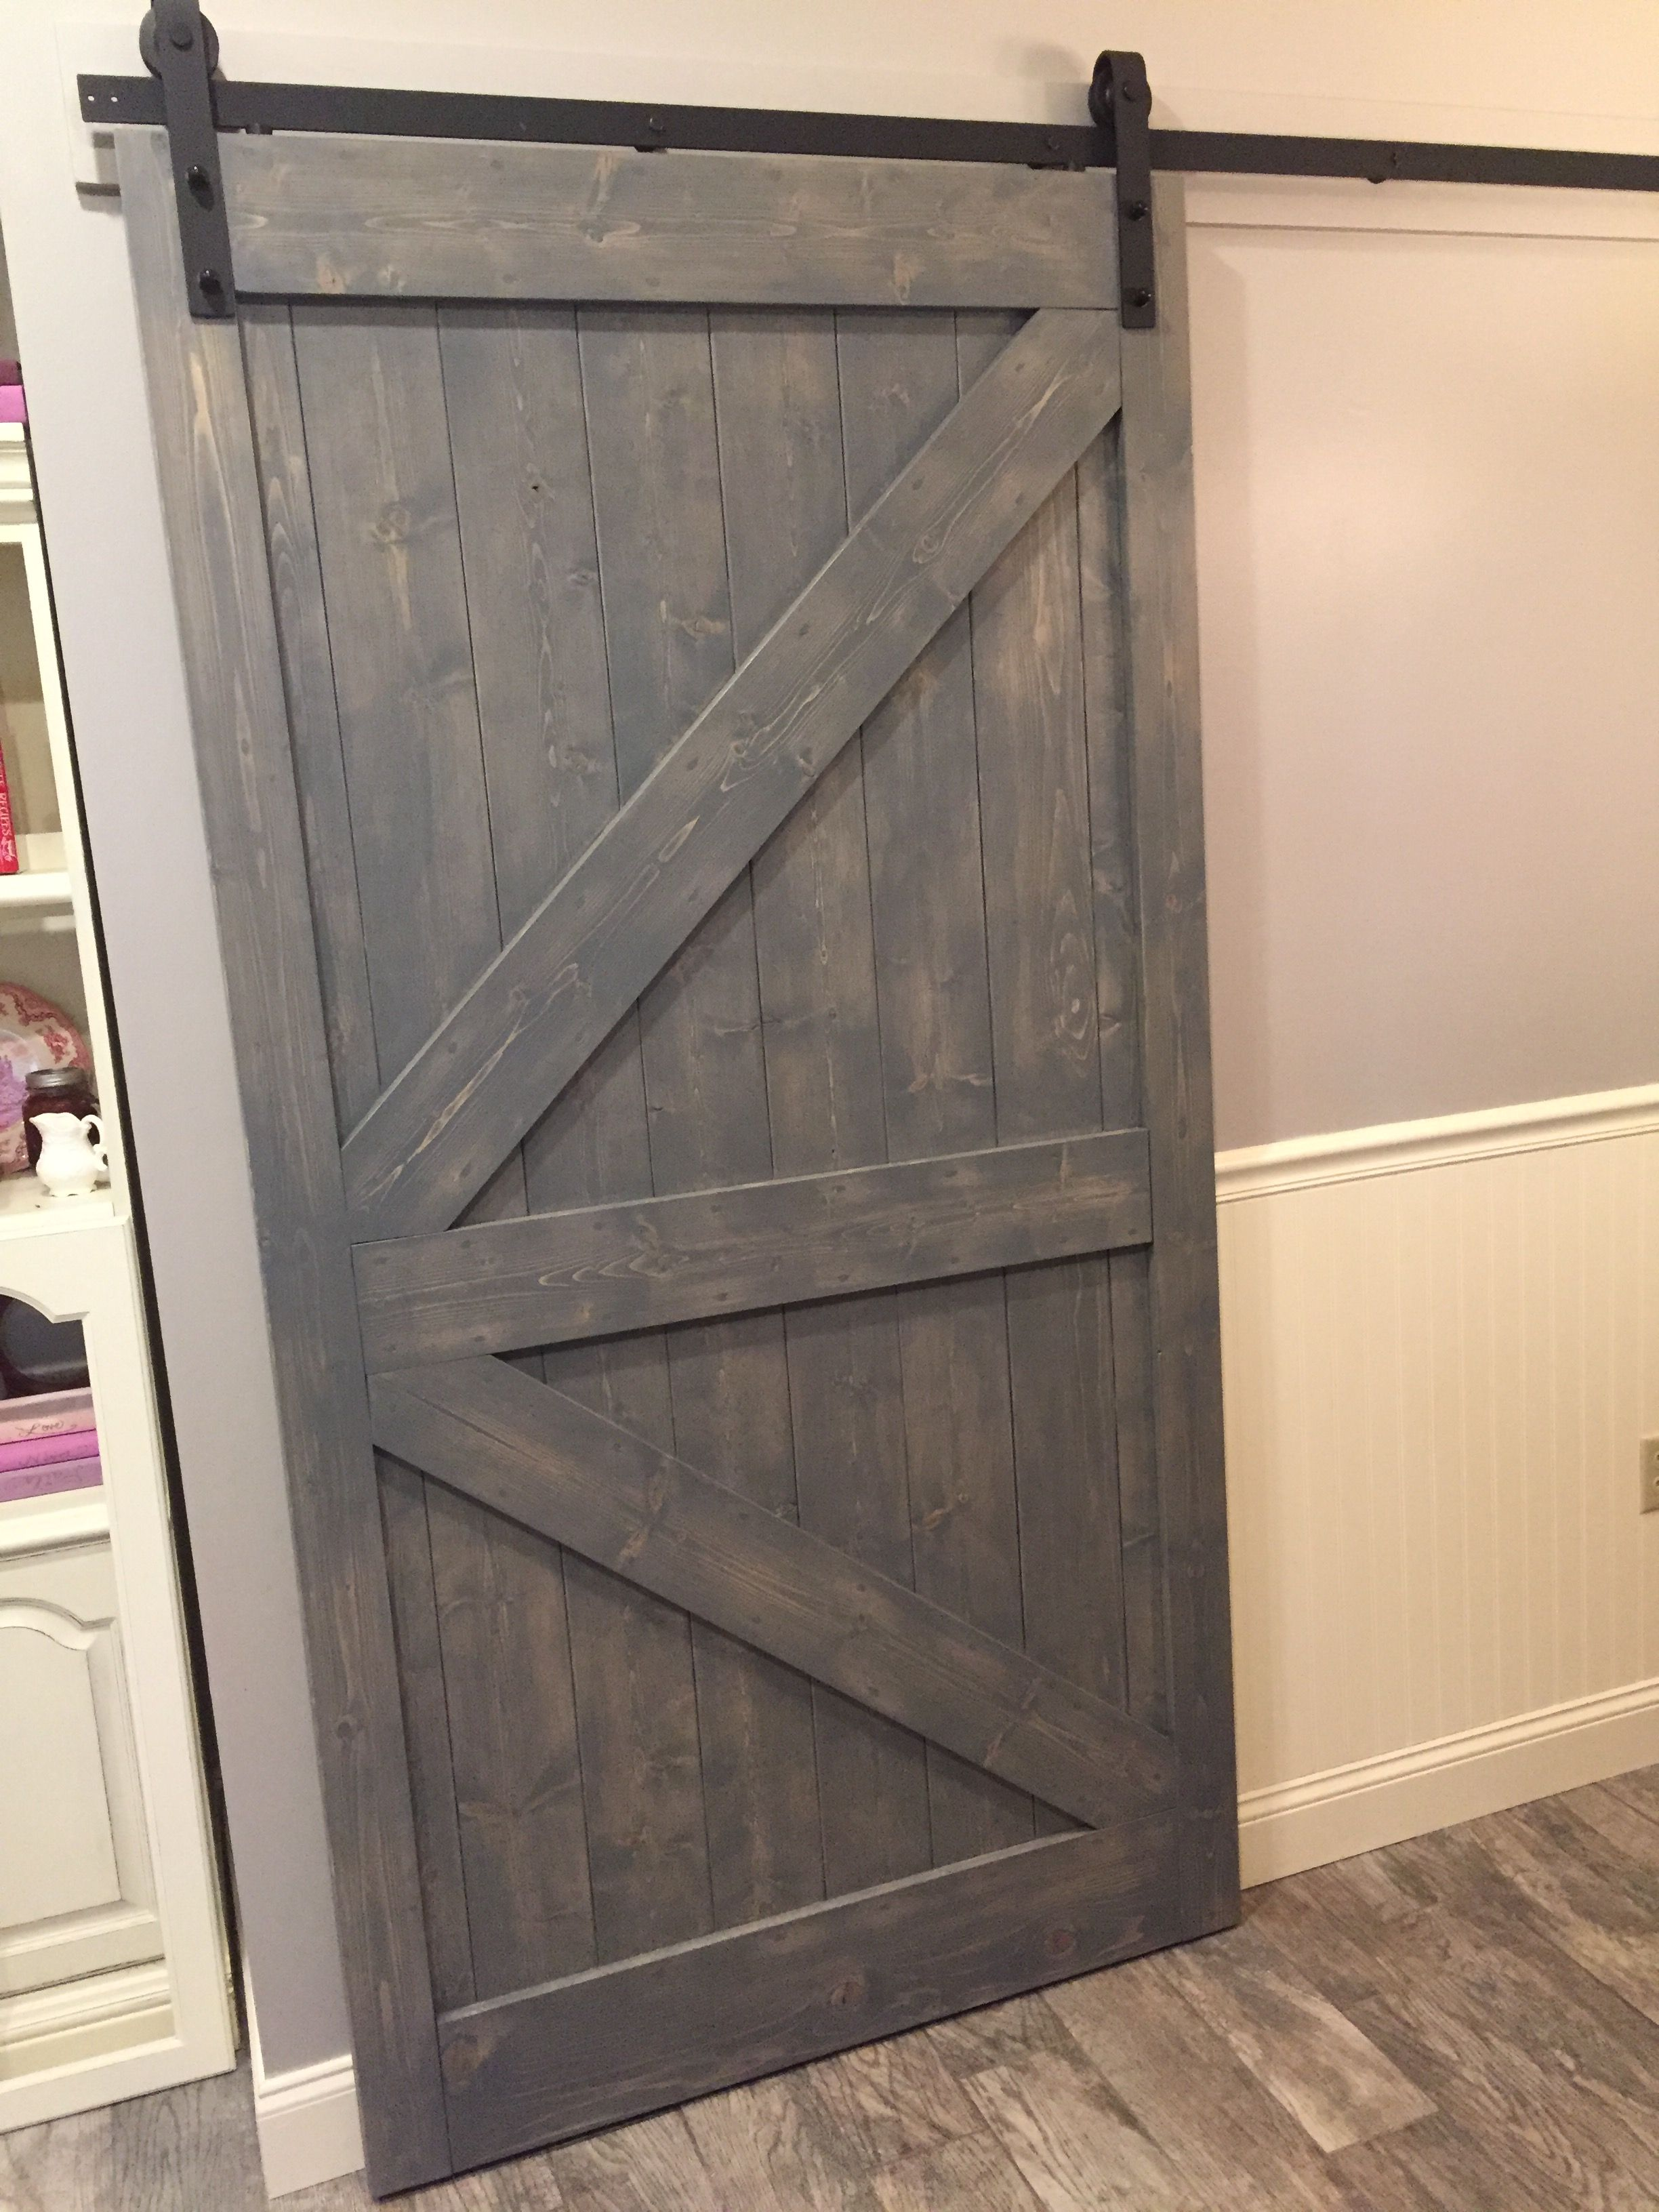 Husband Hand Crafted Barn Door Out Of Poplar Boards Hanging Hardware From Home Depot I Stained In Weathered Barn Wo Barn Door Furniture Restoration Barn Wood